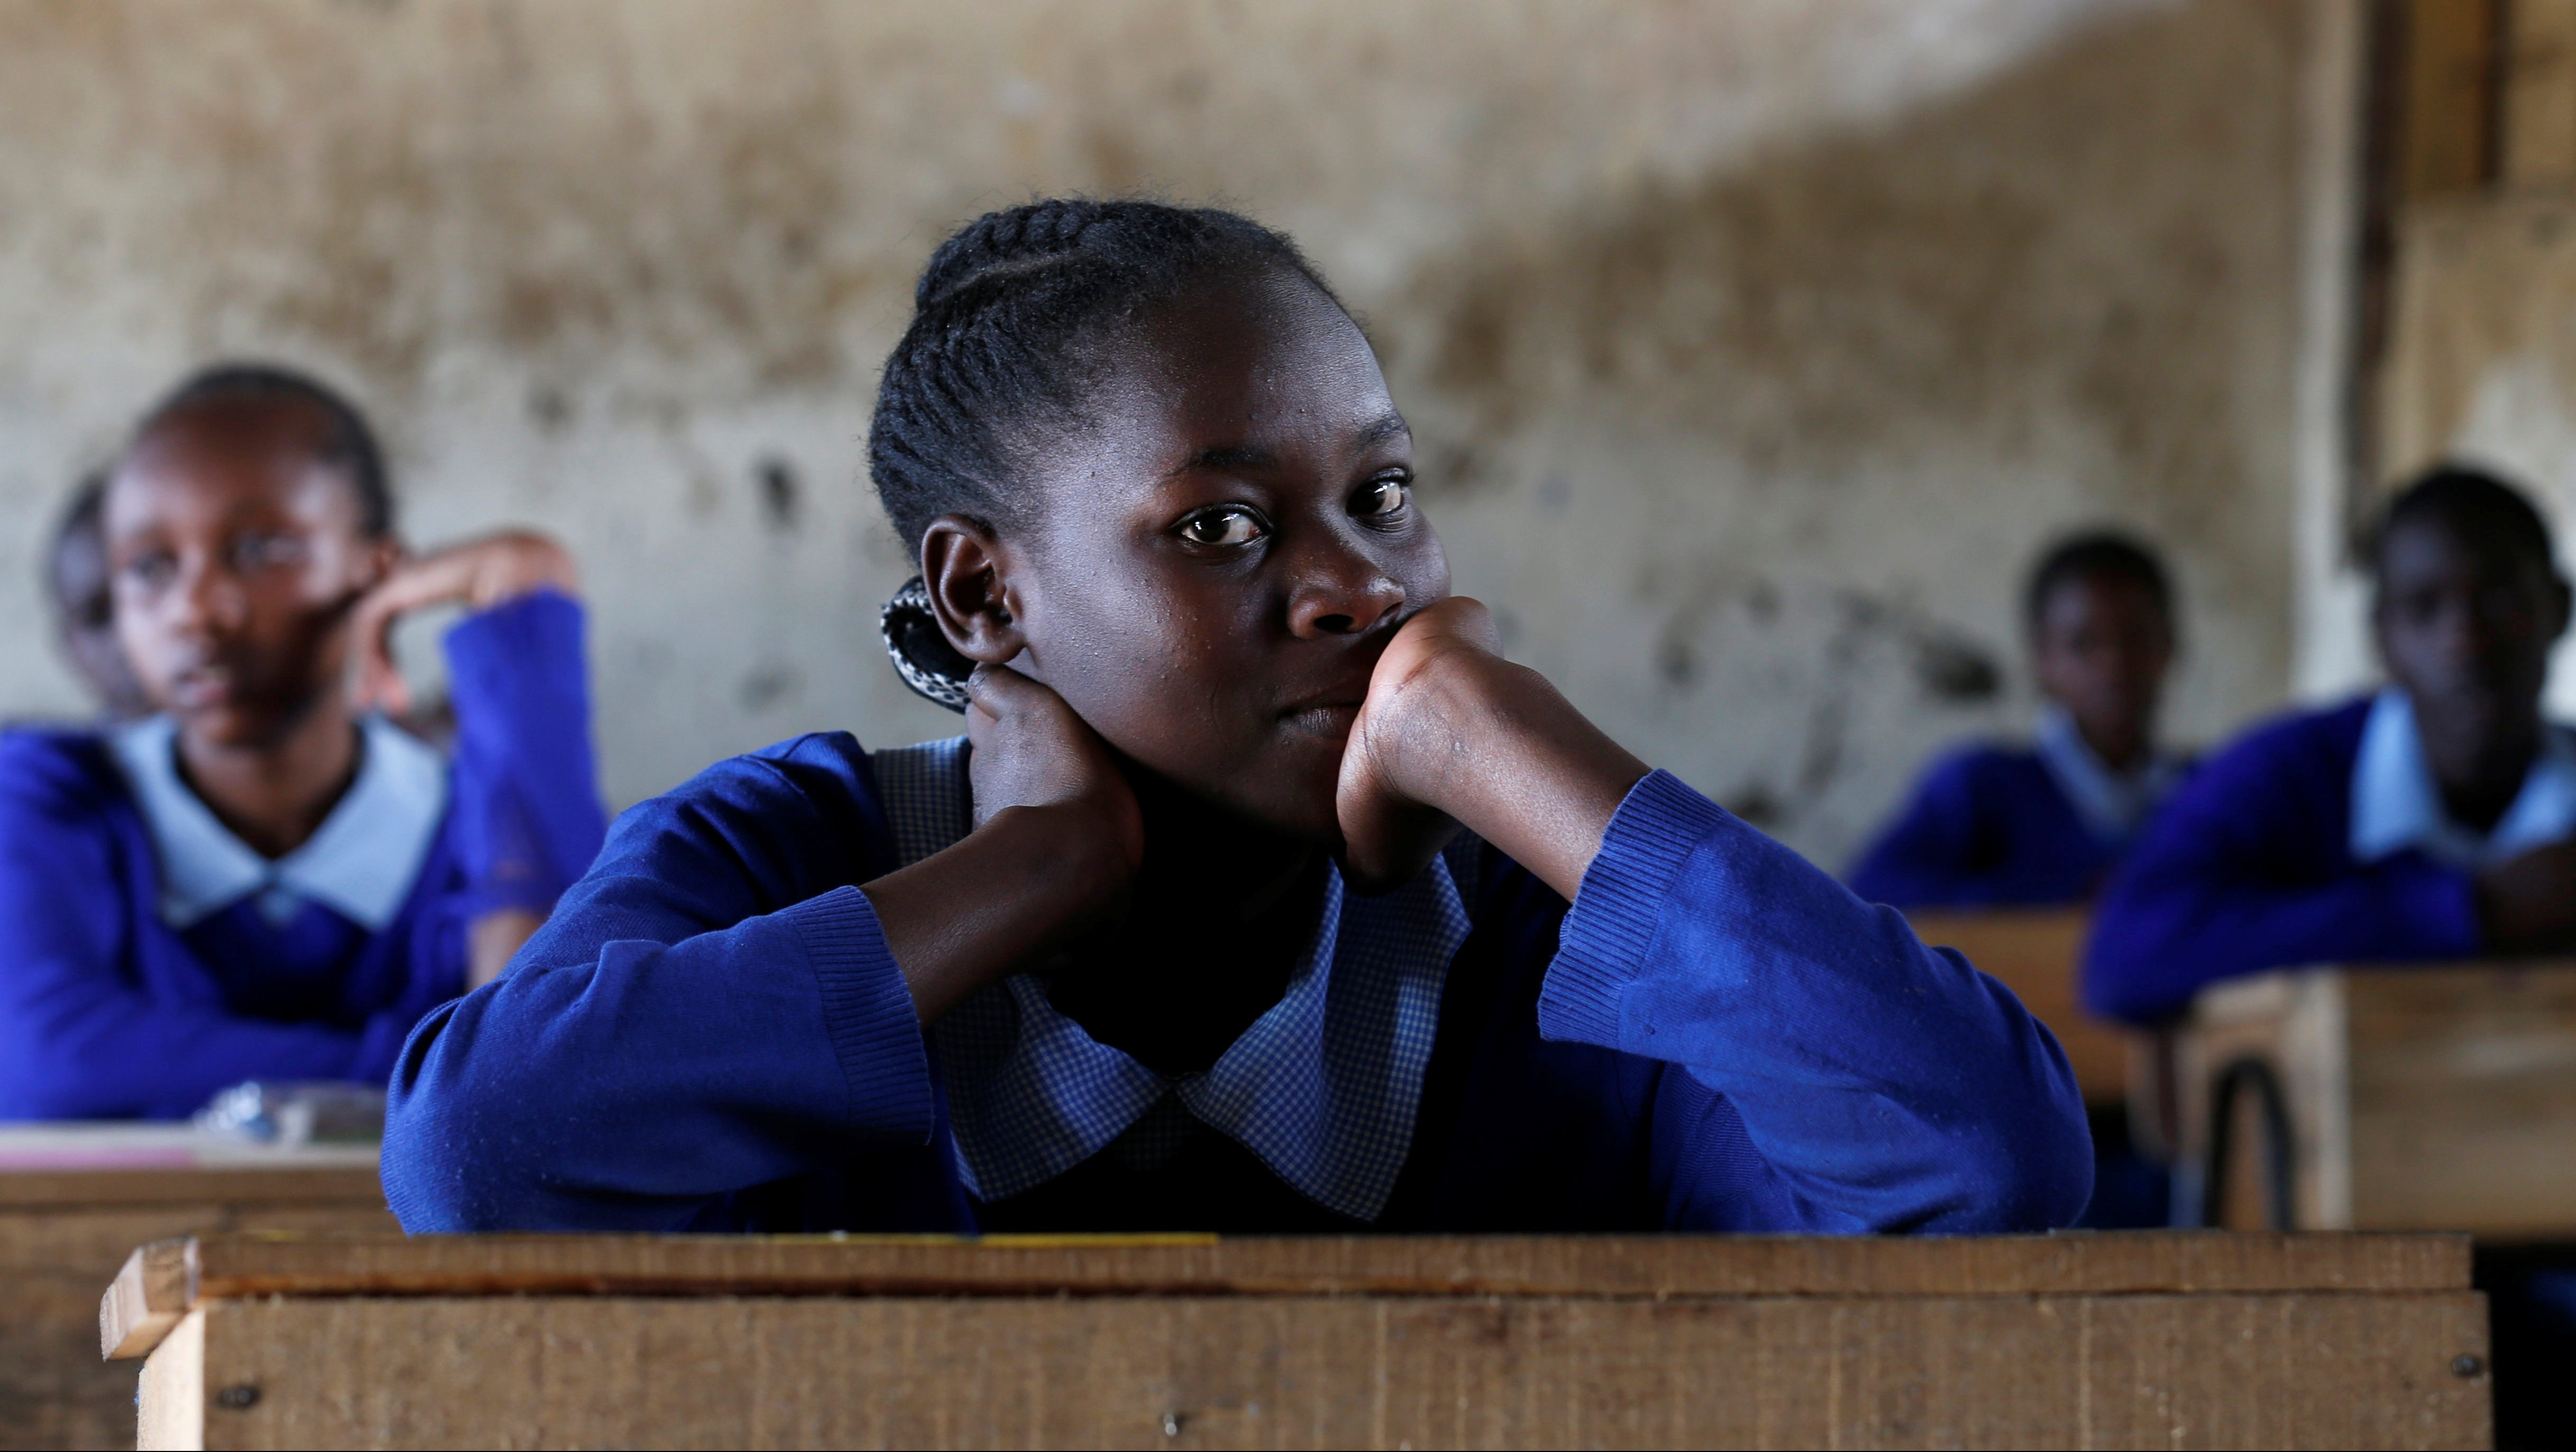 A pupil sits inside a classroom ahead of the primary school final national examinations at Kiboro Primary school along Juja road in Nairobi